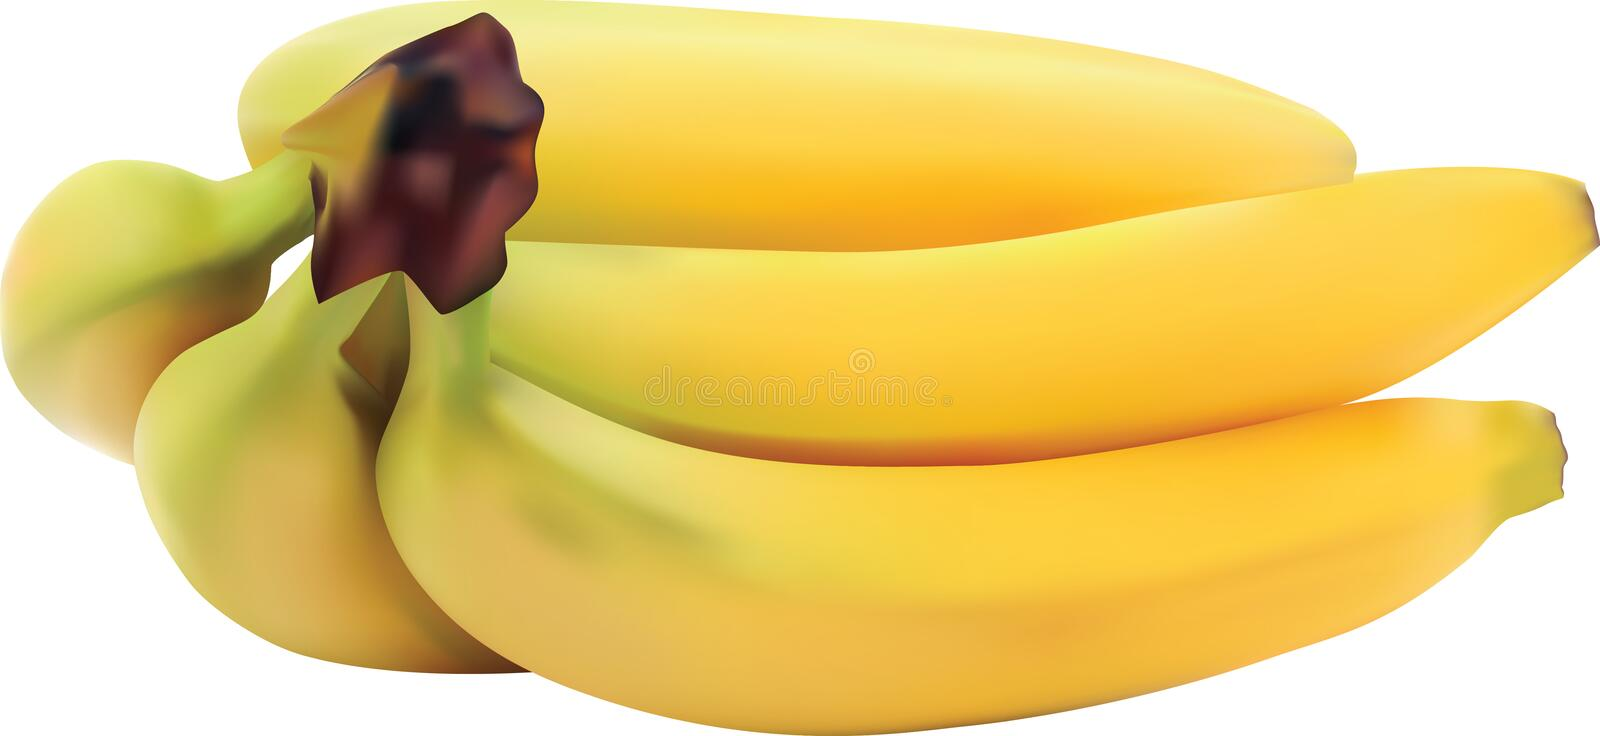 BANANA VECTOR REALISTIC ADOBE ILLUSTRATOR. Made using Adobe Illustrator with base , banana based on realistic stock illustration